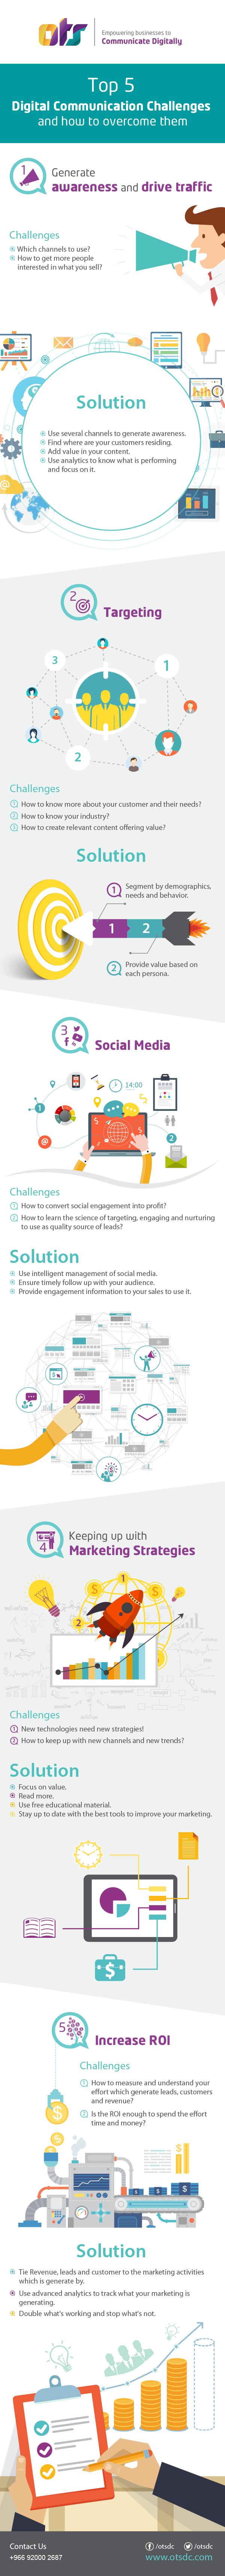 Top 5 Digital Communication Challenges